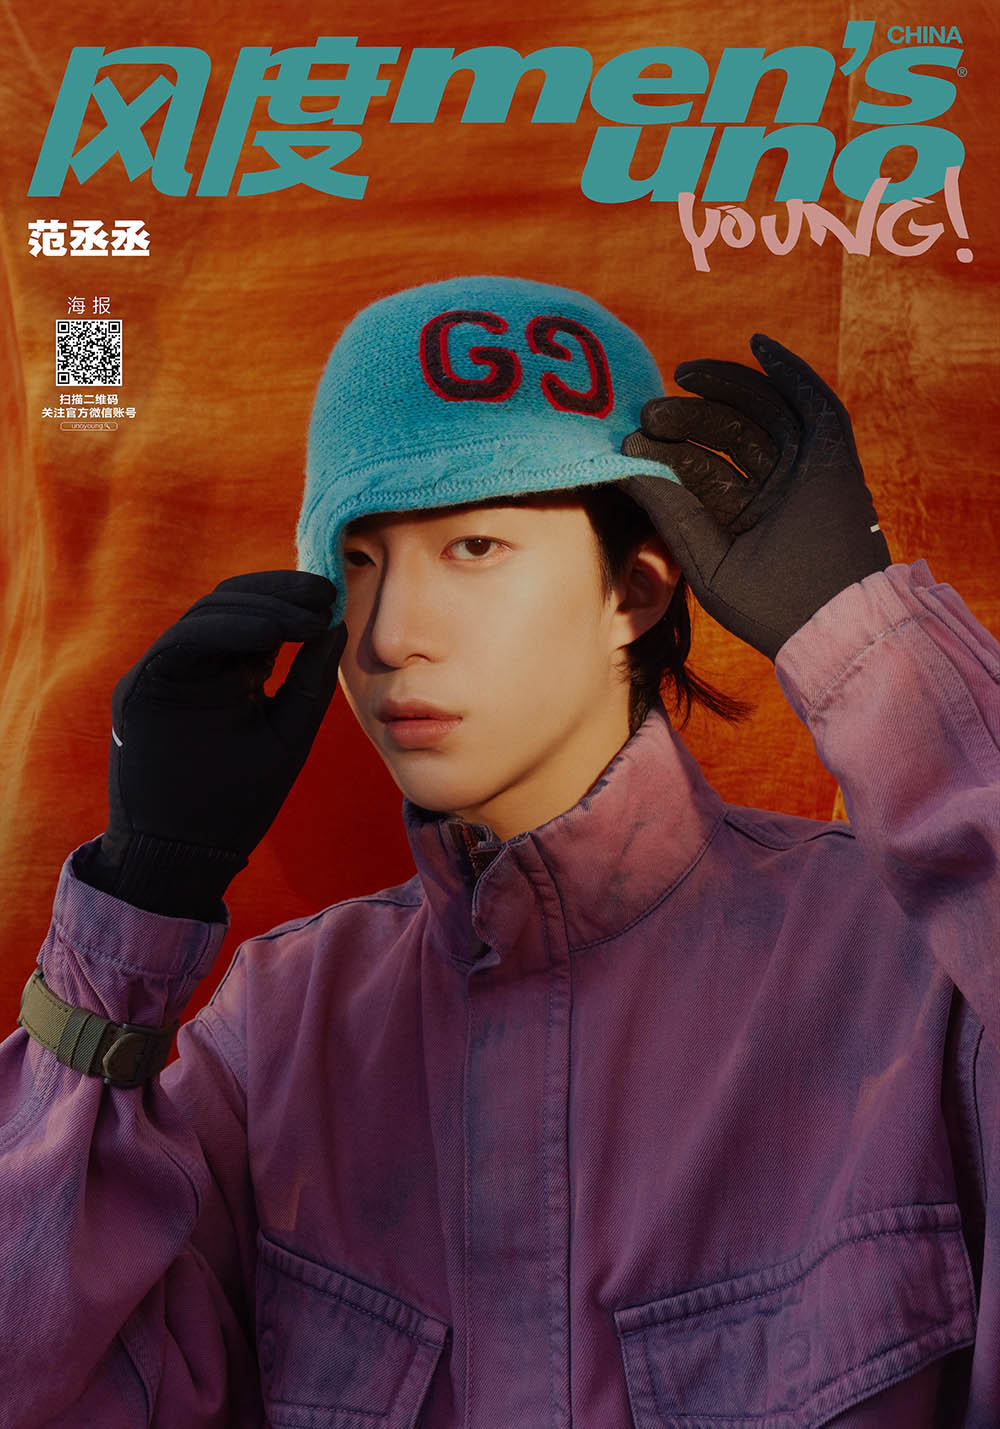 Fan Chengcheng covers Men's Uno Young China April 2019 by Jiaji Jin